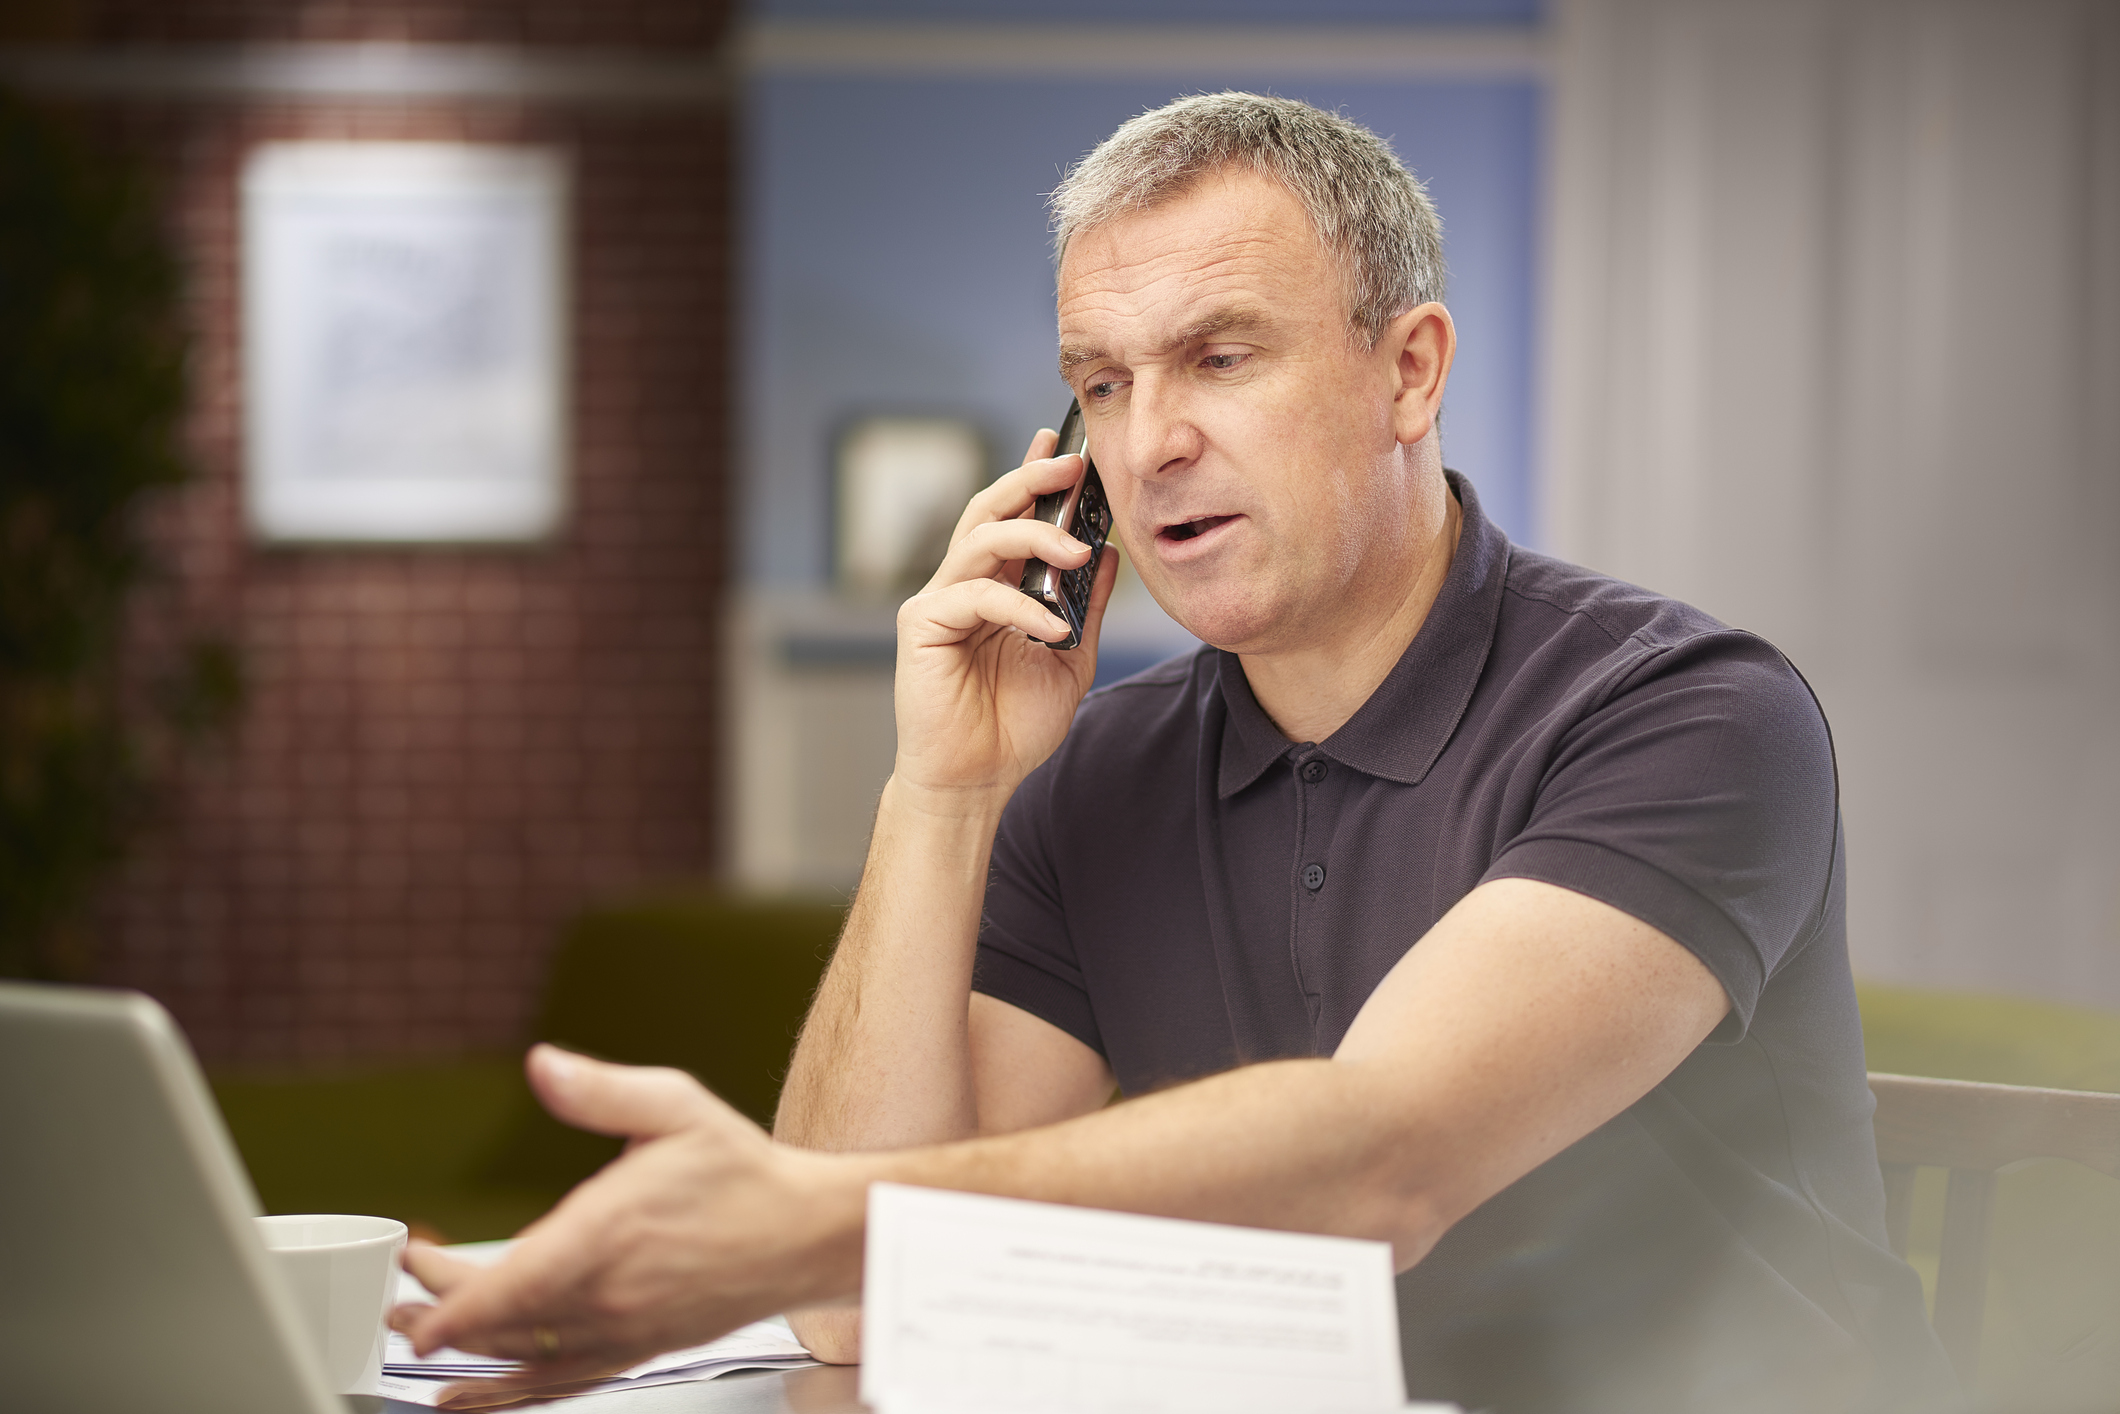 6 Simple steps to improve VoIP call quality